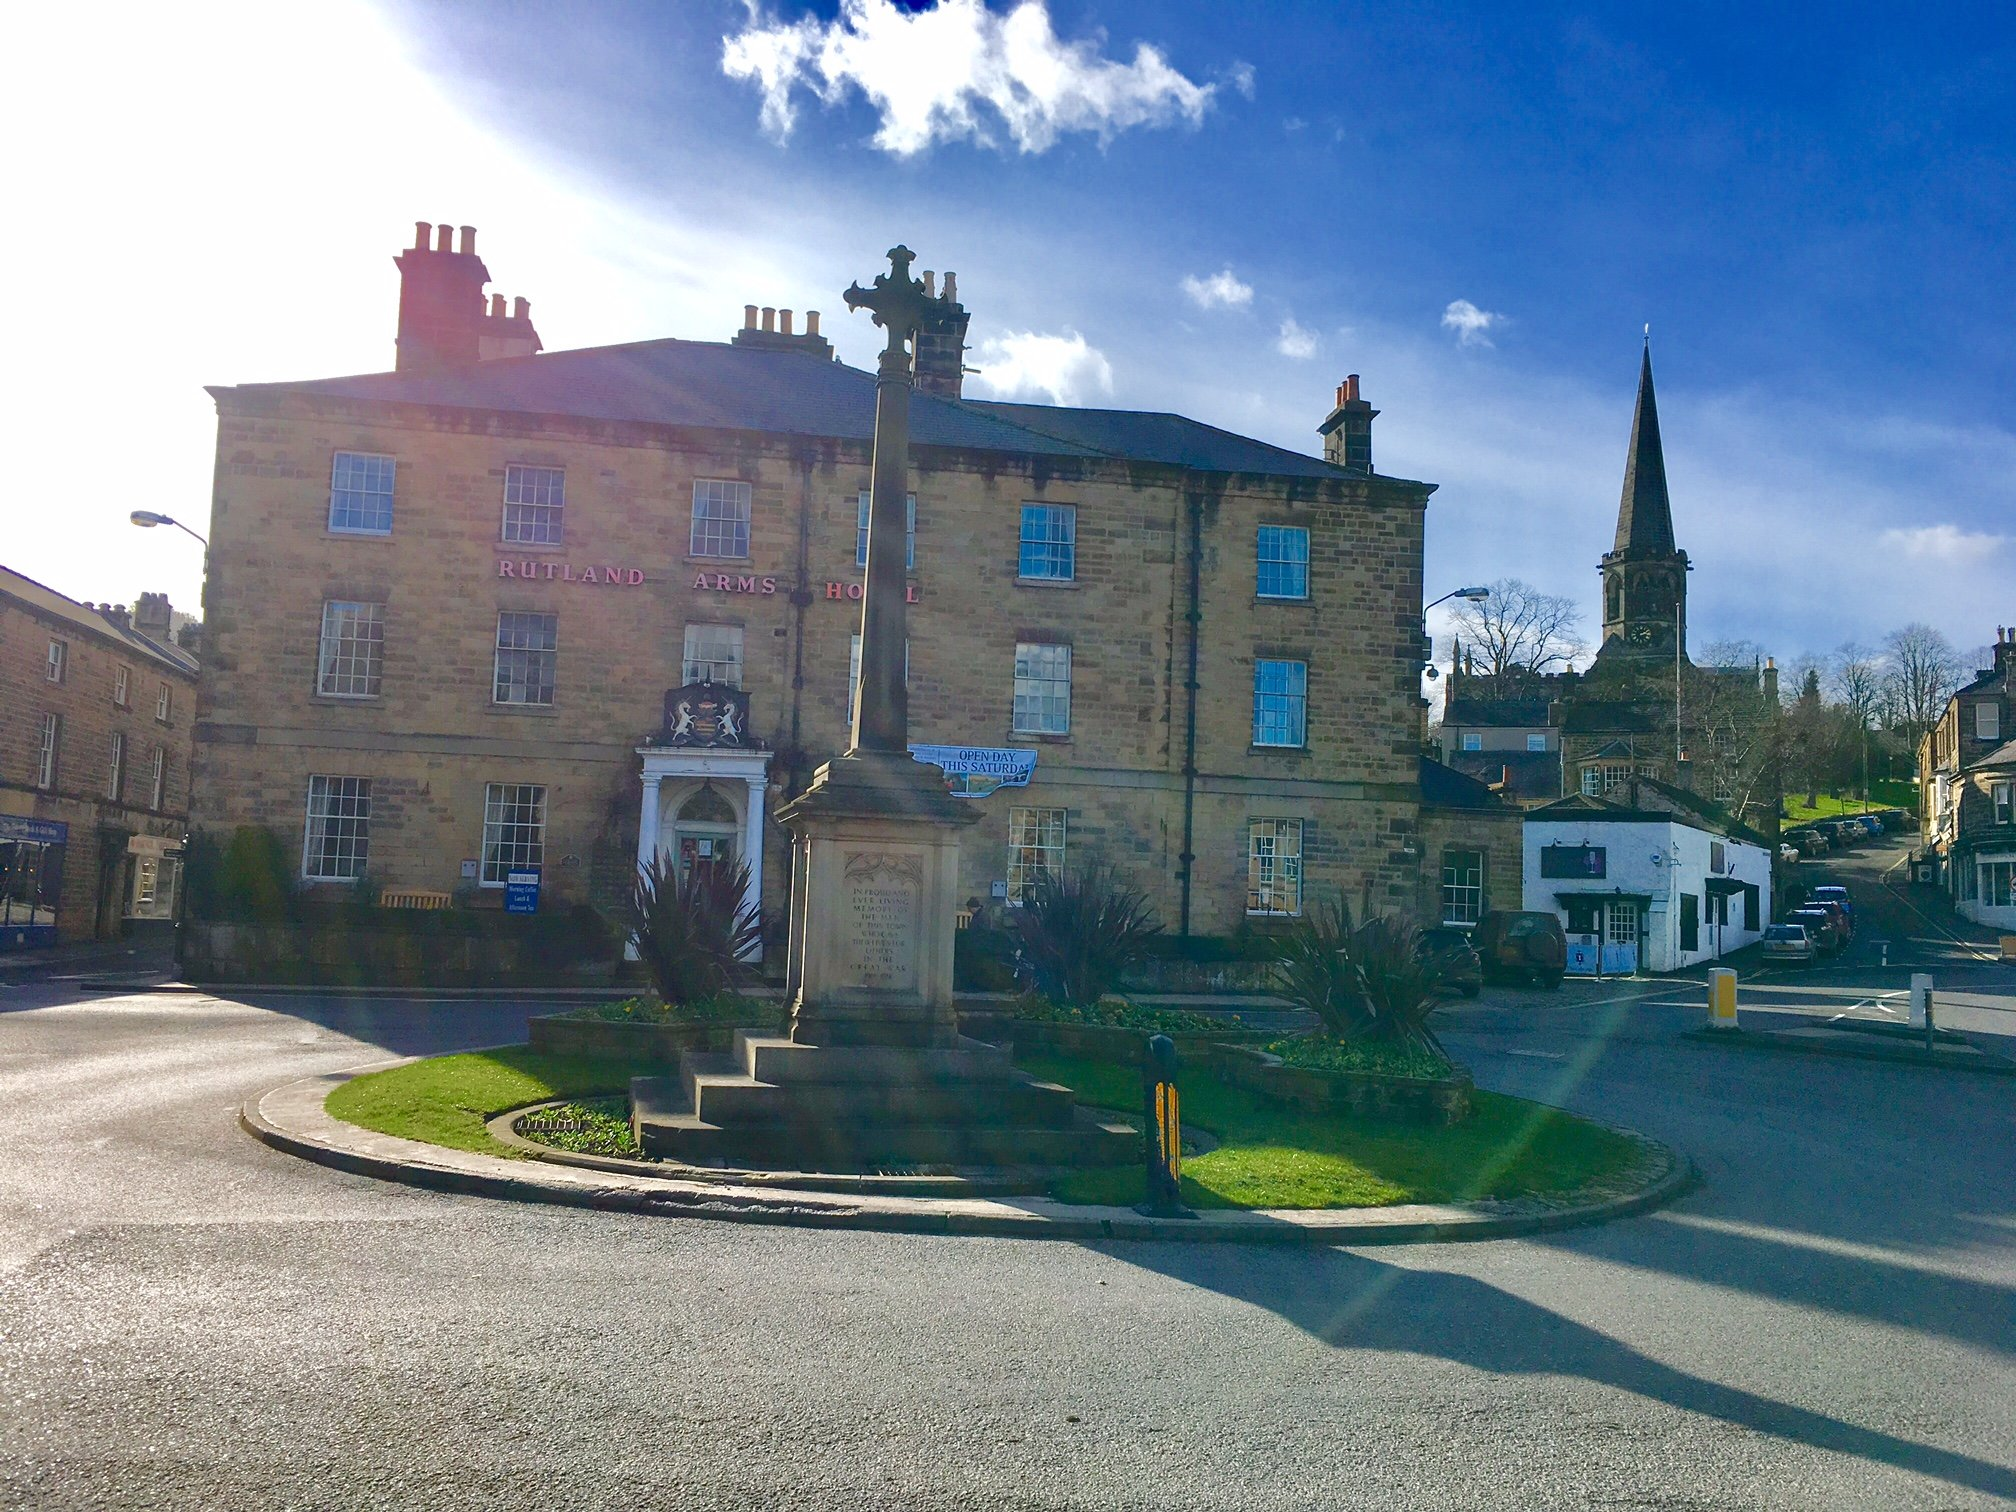 Bakewell Square